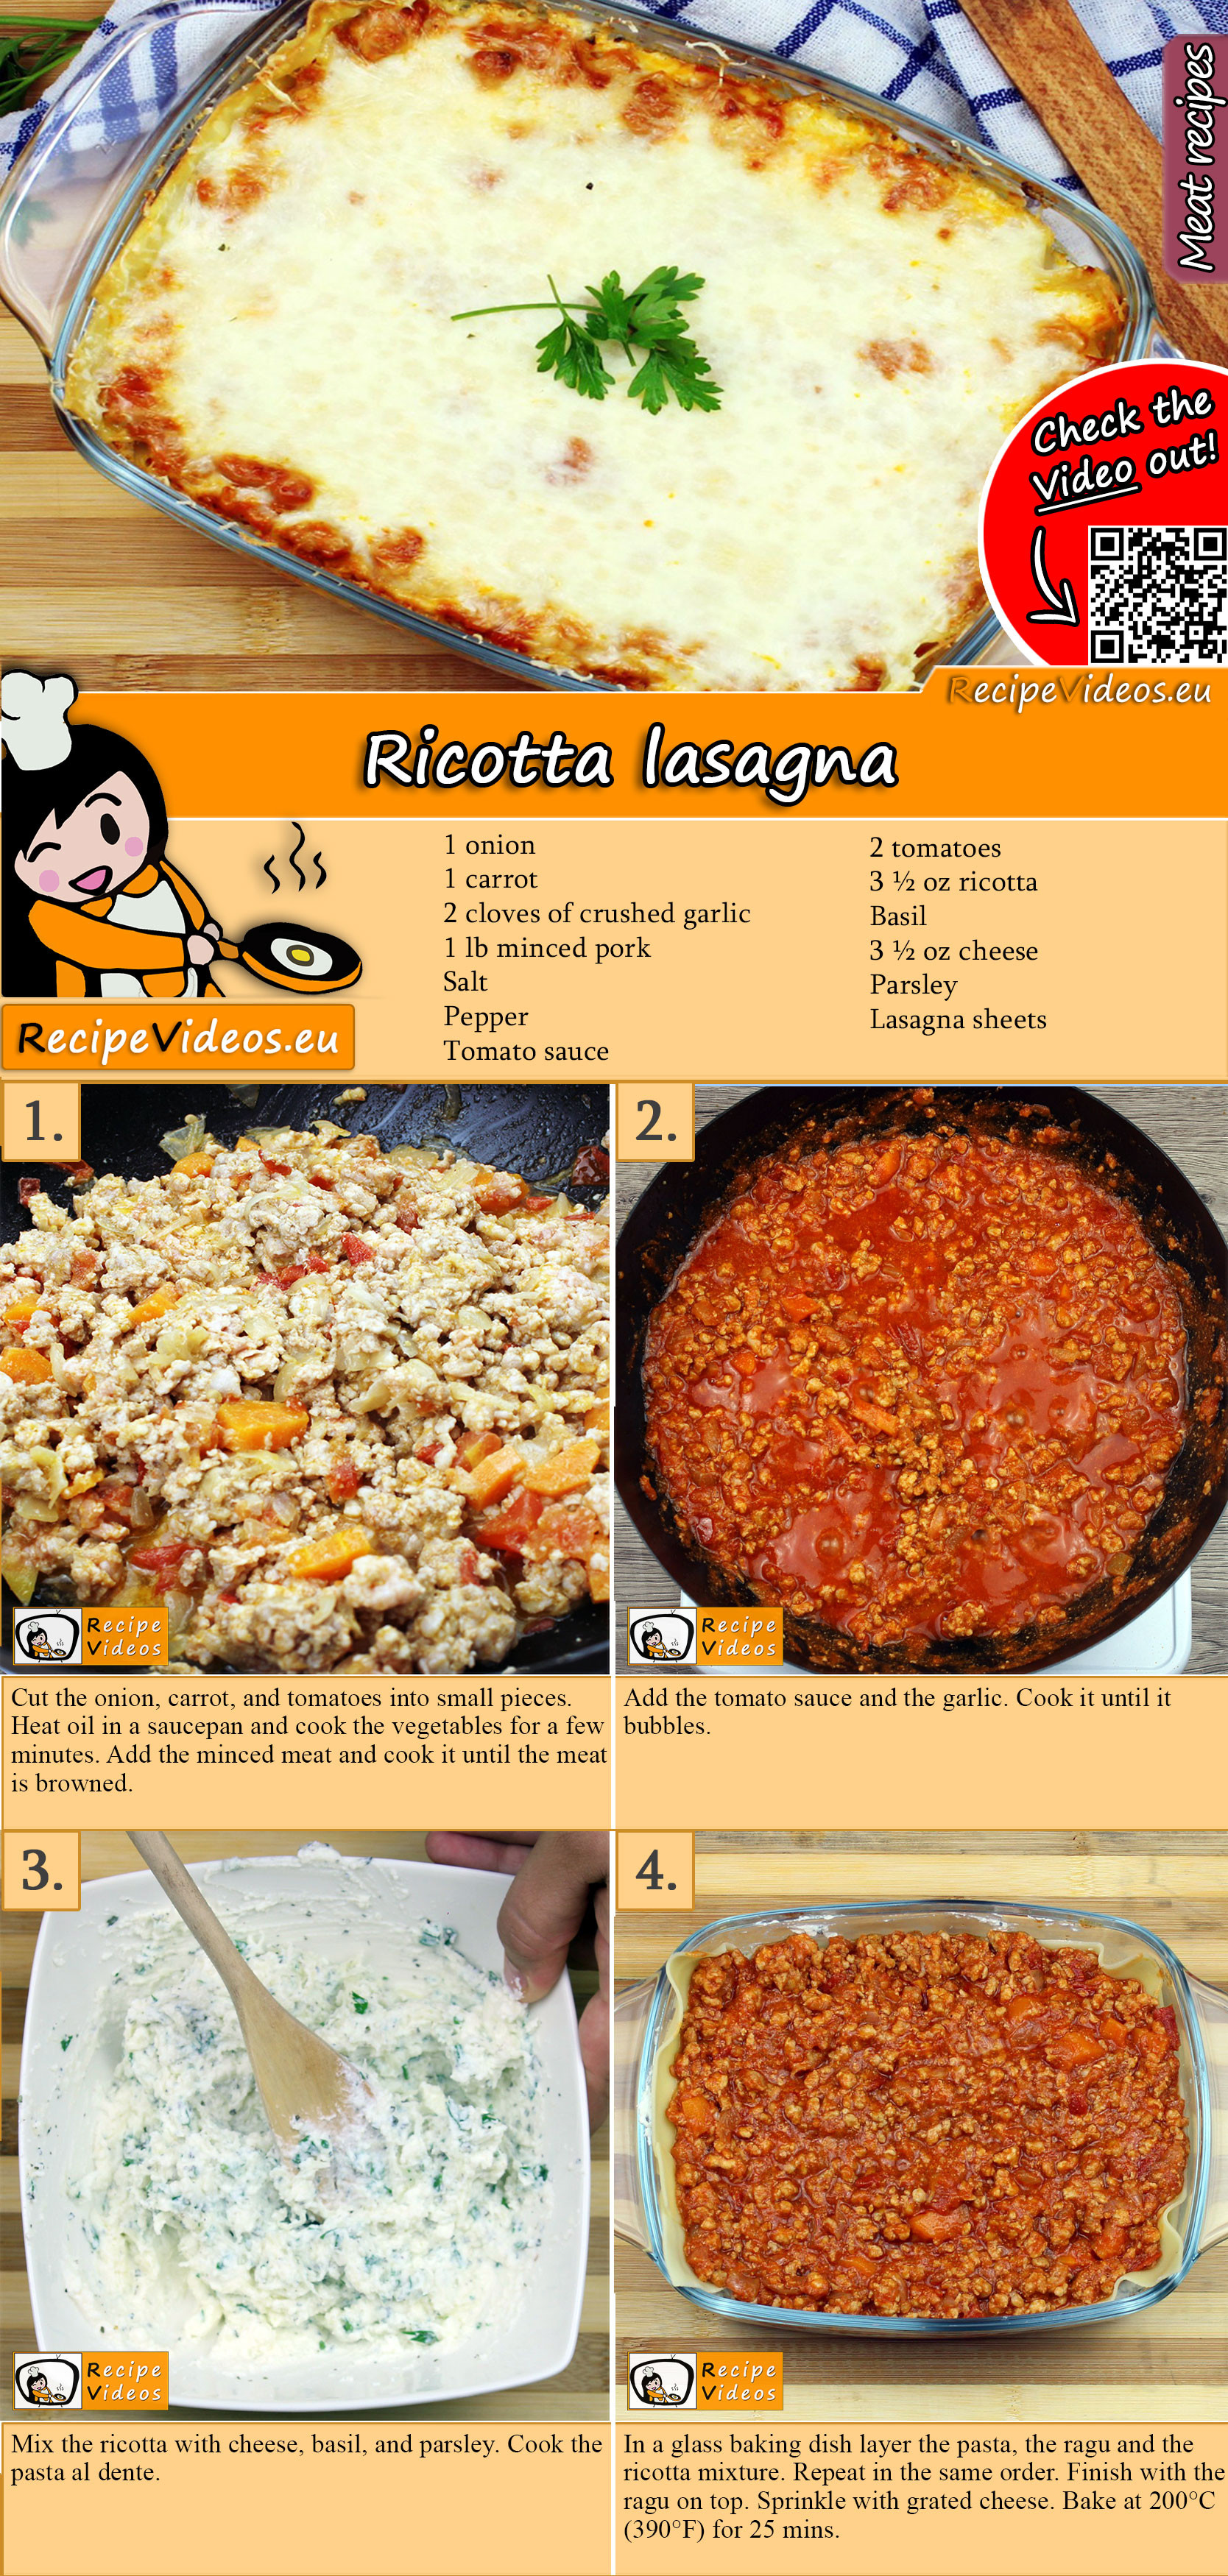 Ricotta lasagna recipe with video